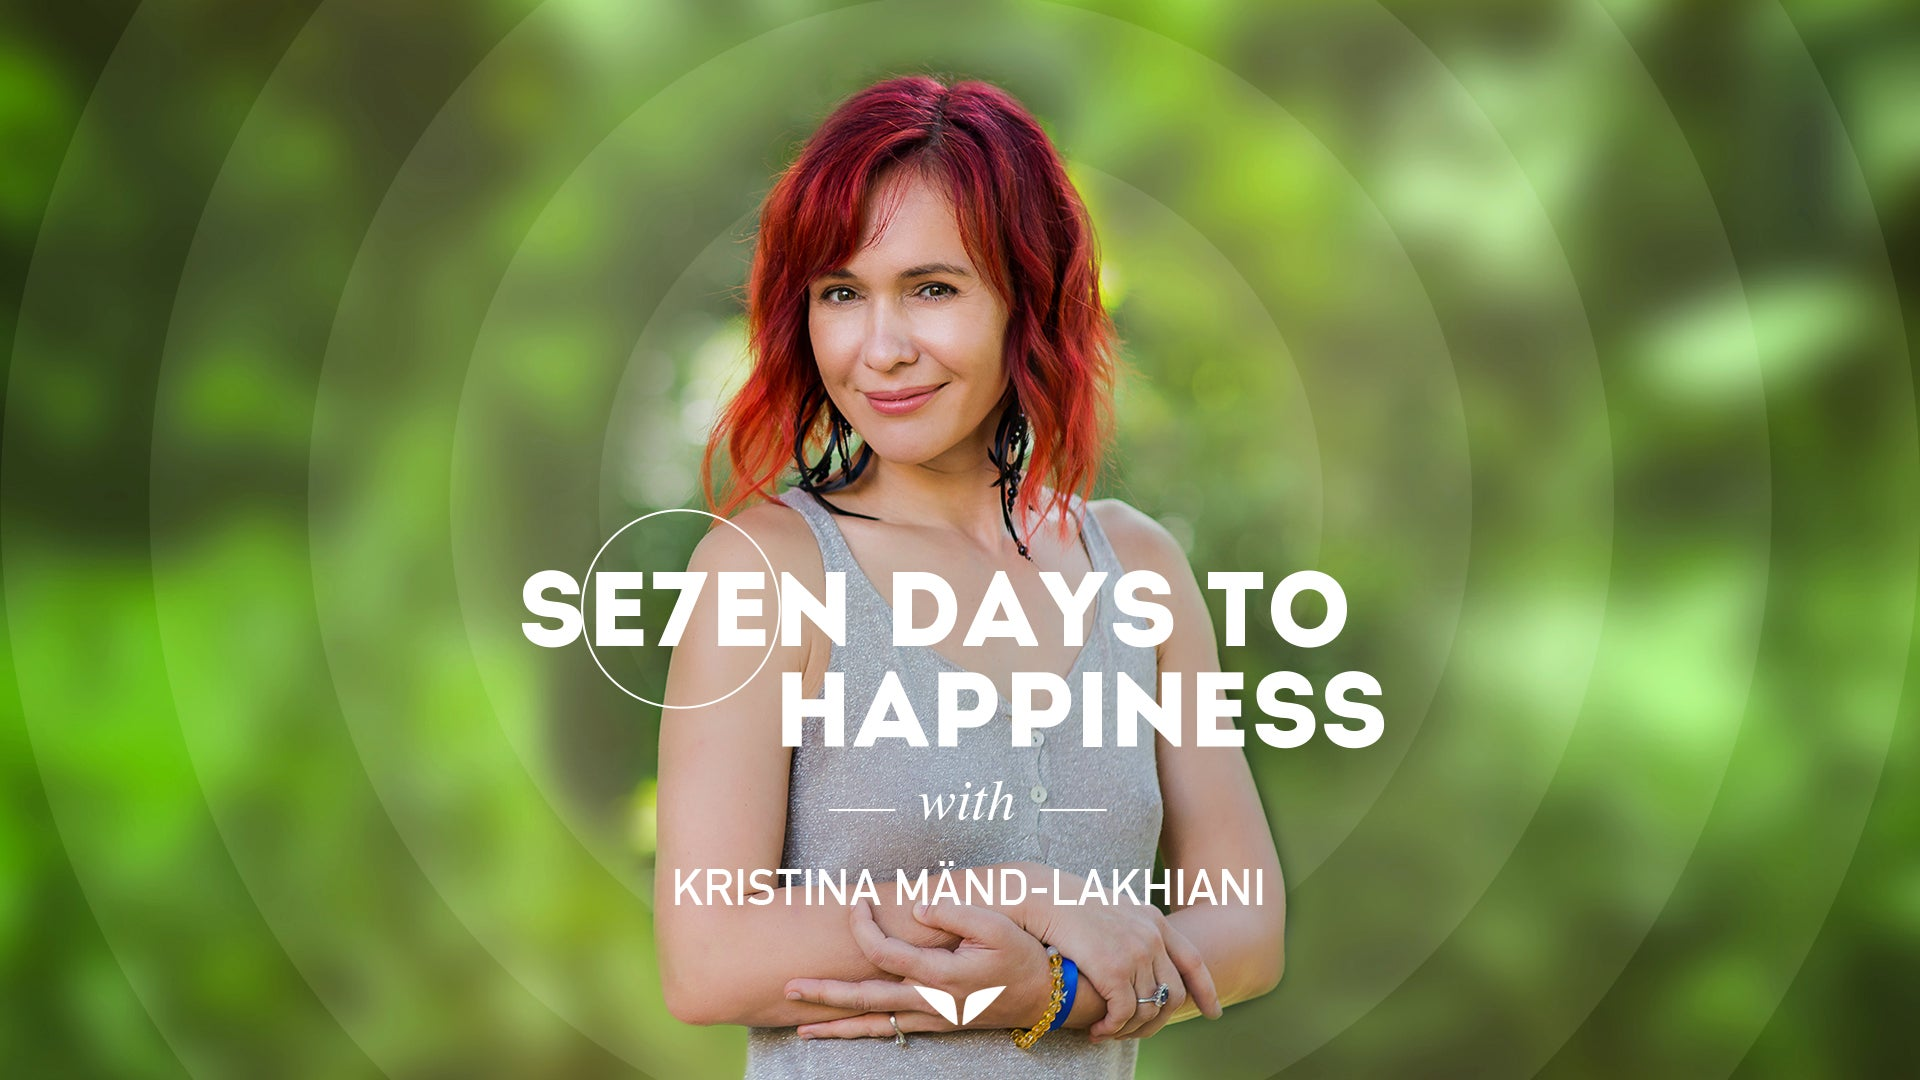 7 days to happiness